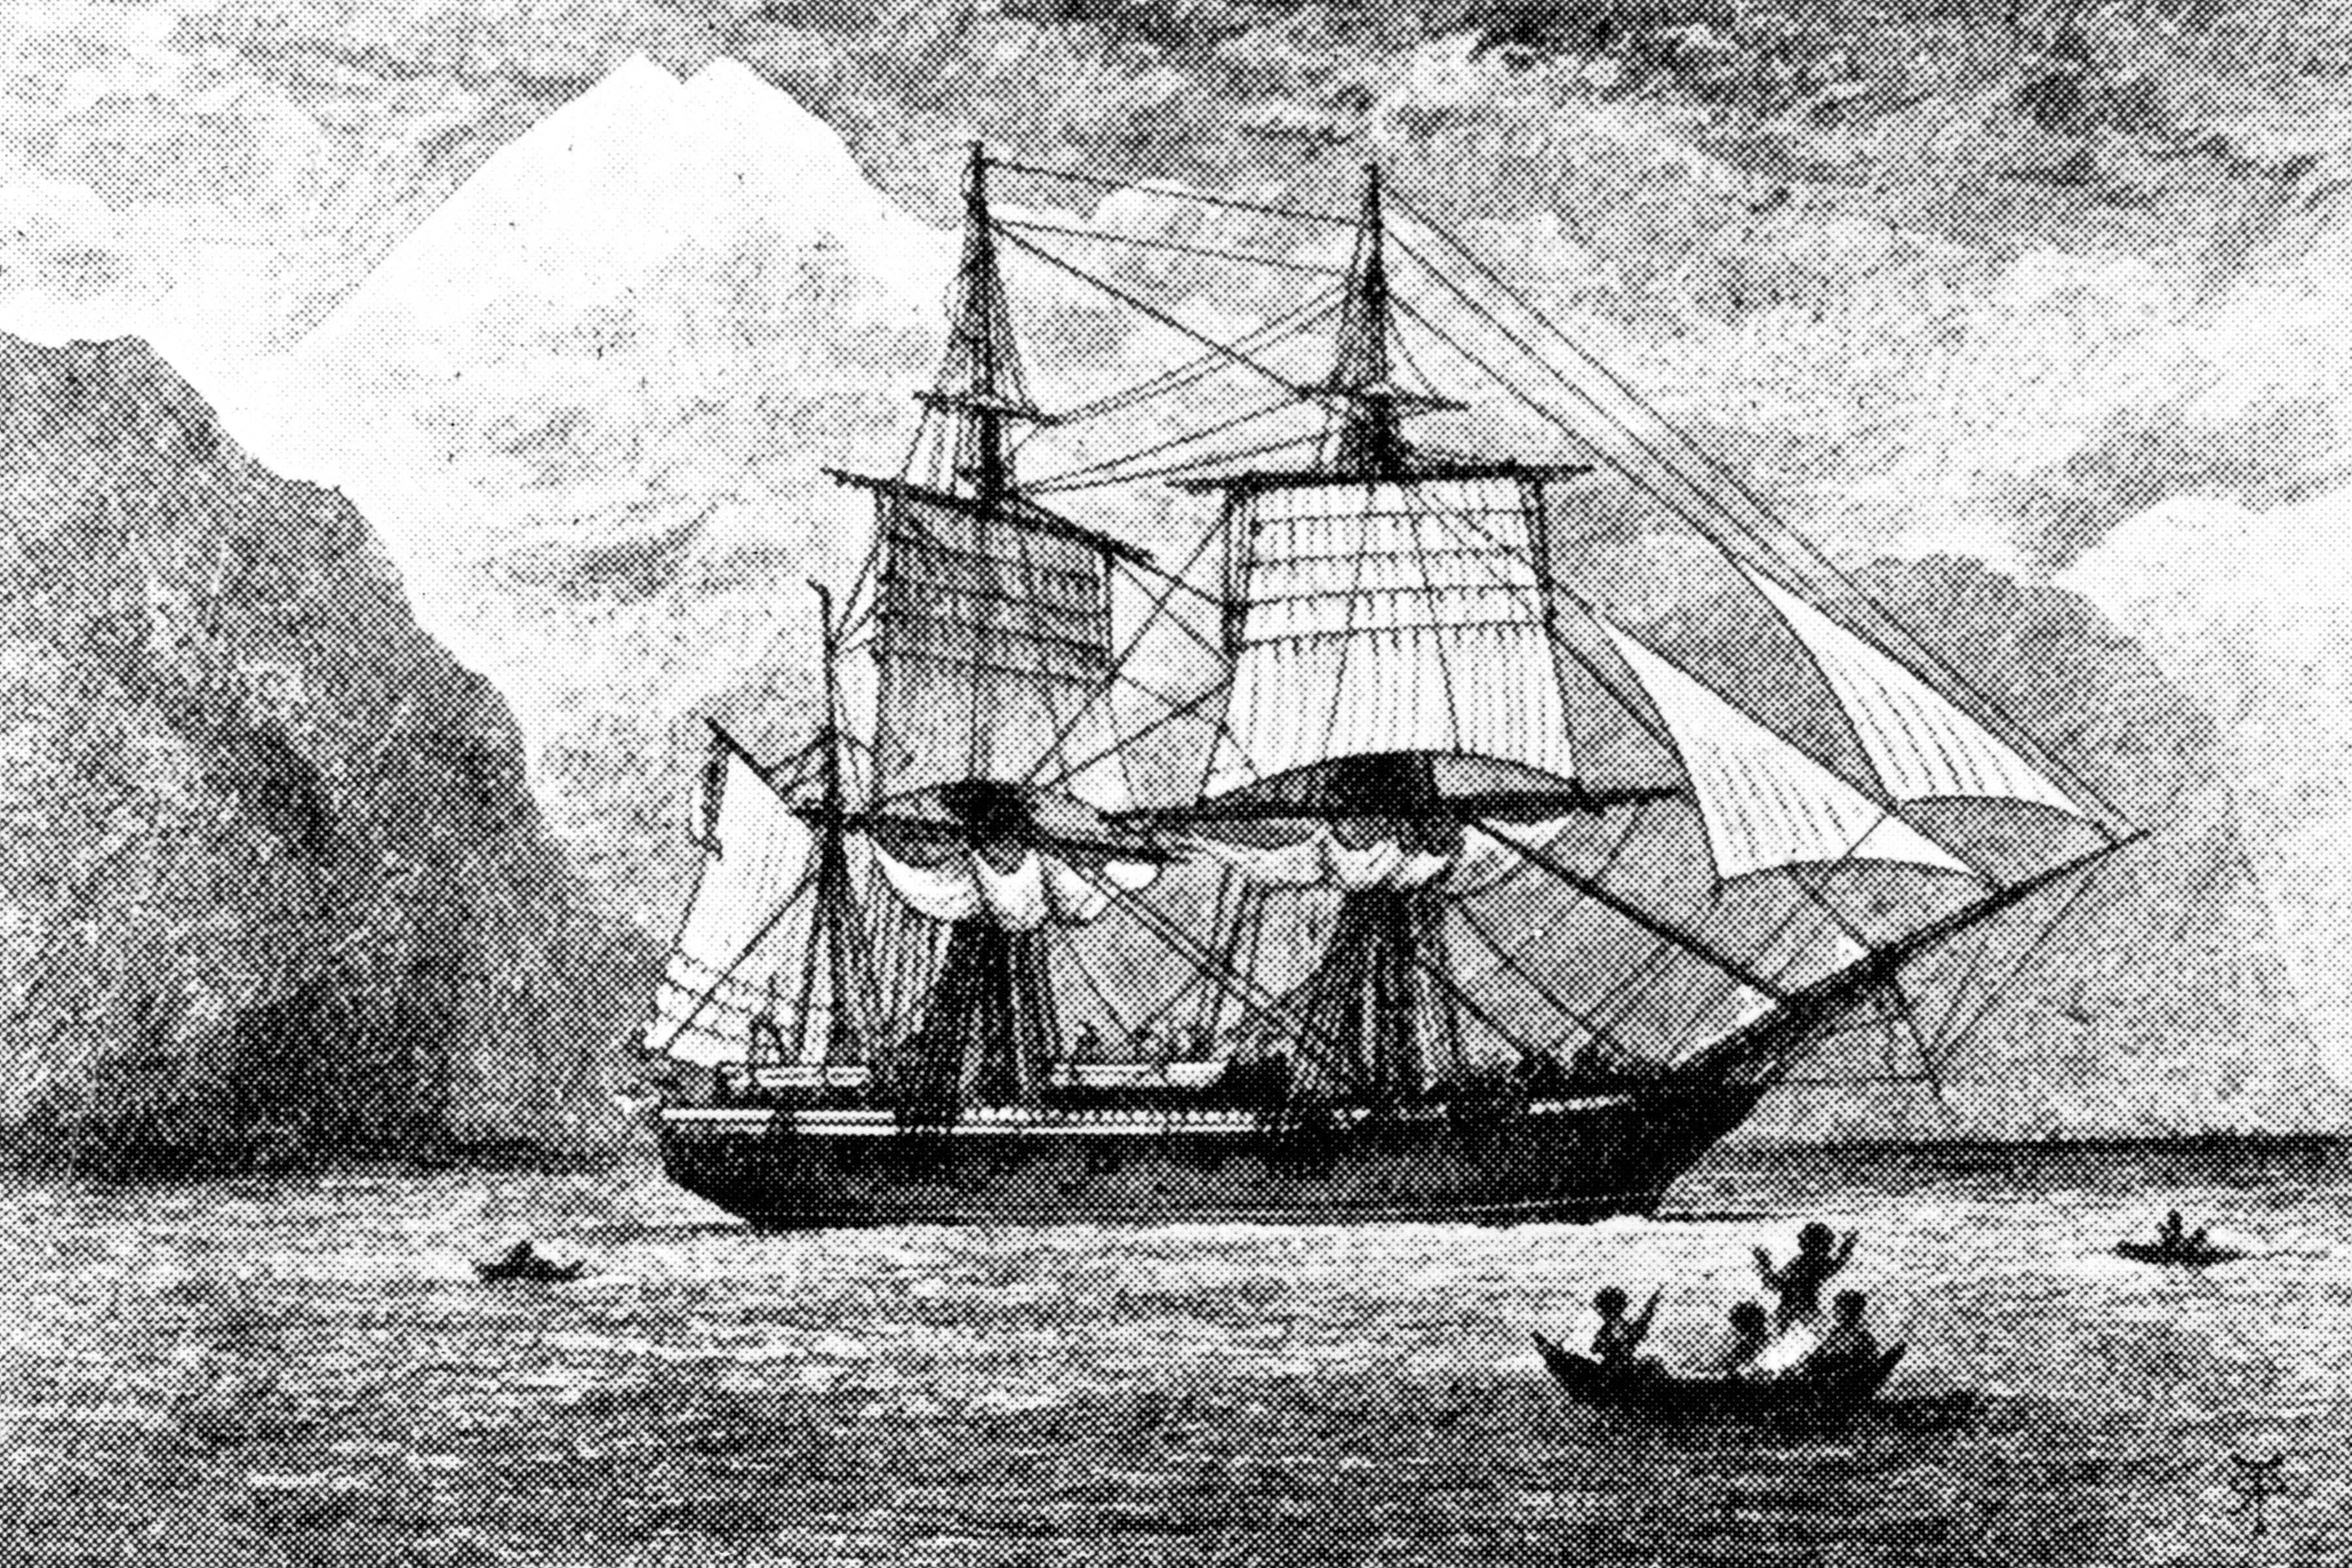 HMS Beagle during its circumnavigation of the globe with scientist Charles Darwin aboard